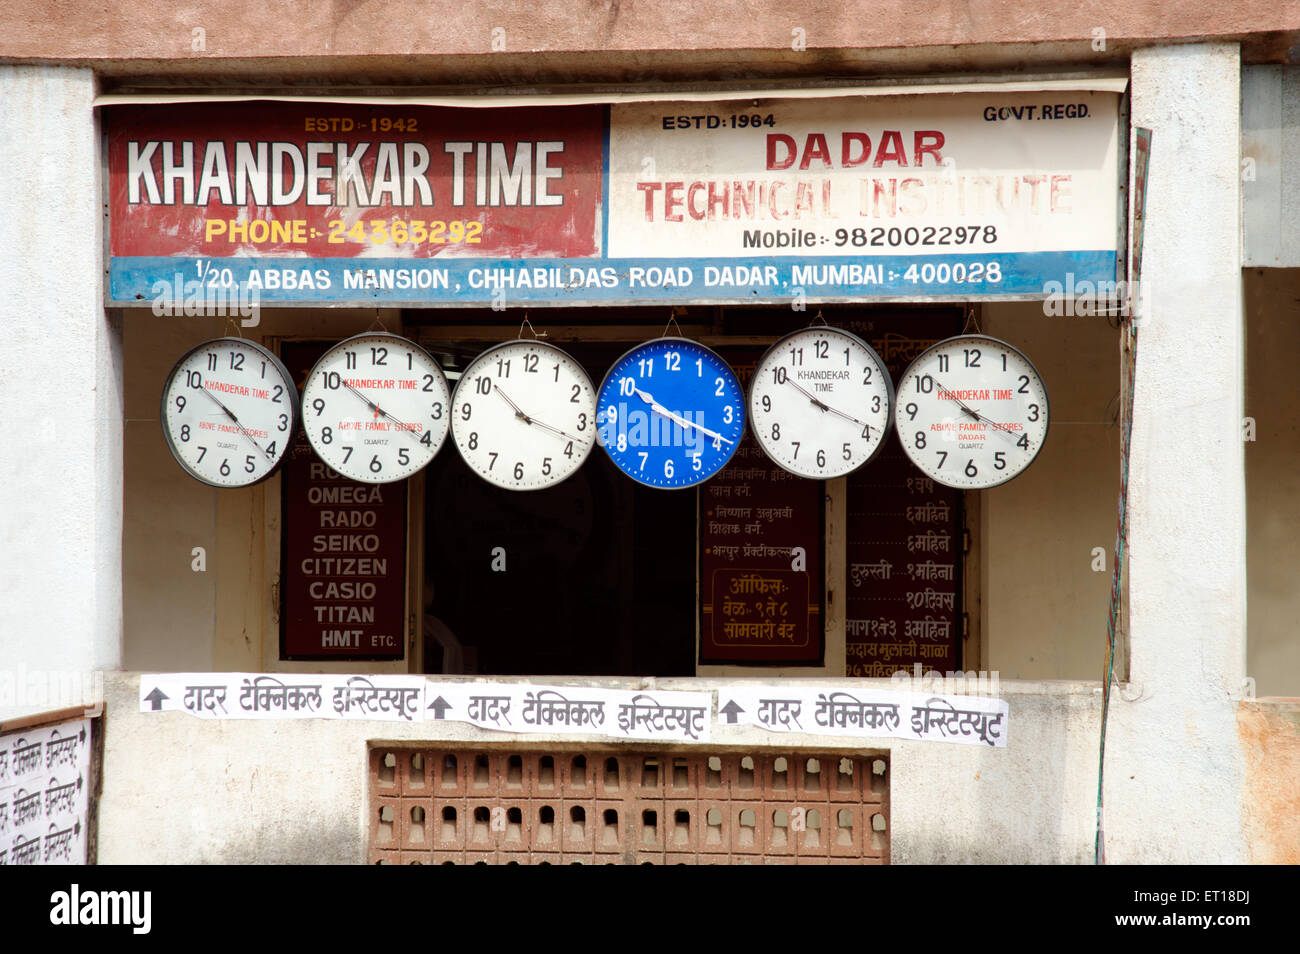 Time Wall Clock Hanging Outside of Shop - Stock Image